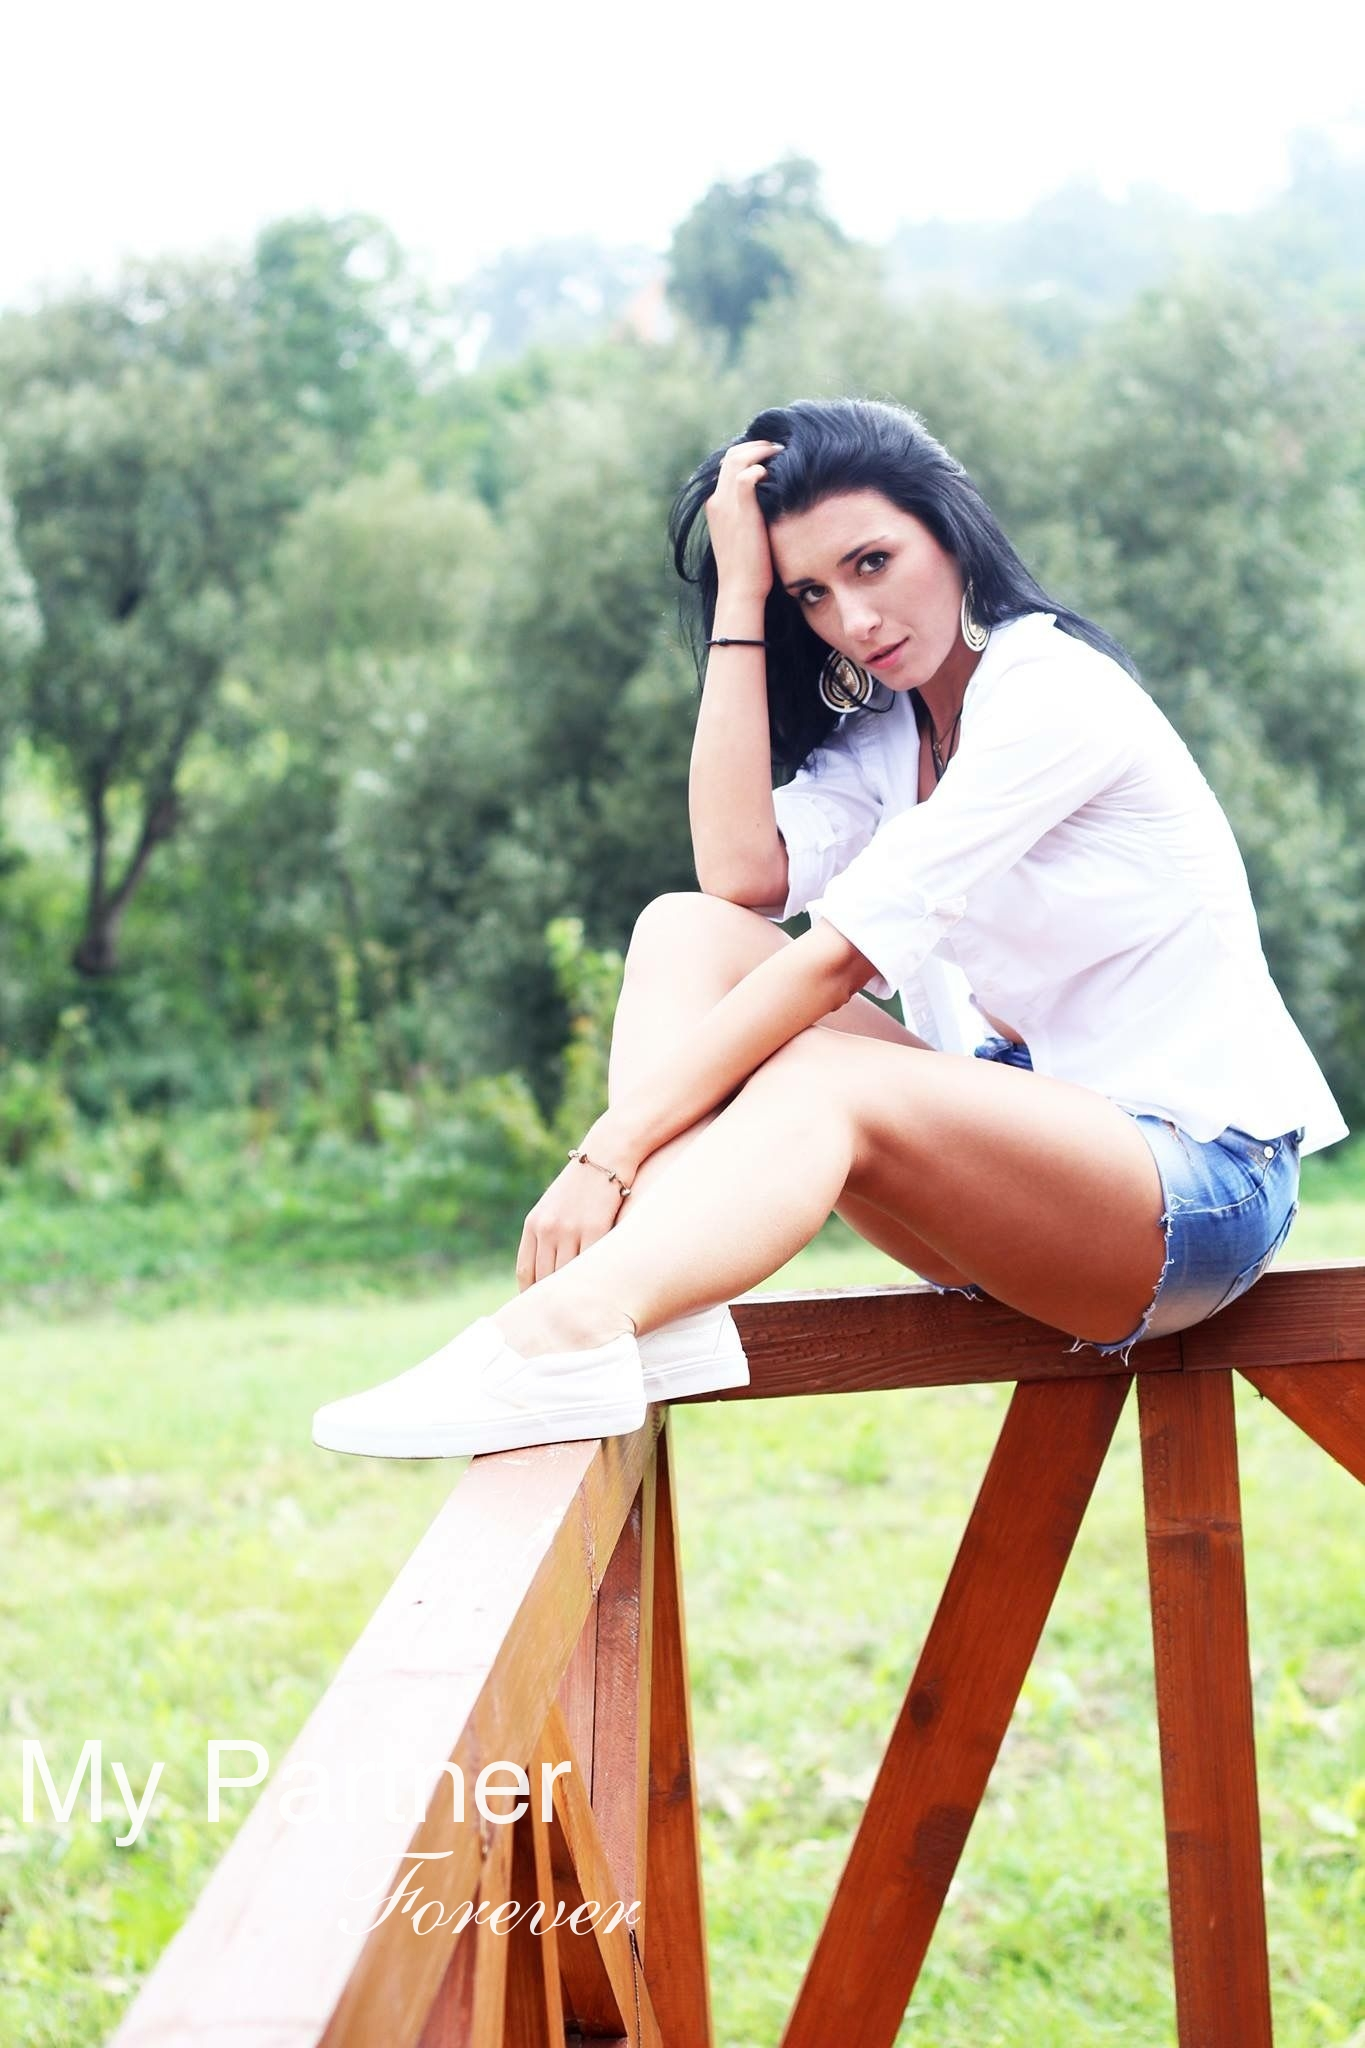 Ukrainian Woman Seeking Marriage - Anna from Vinnitsa, Ukraine